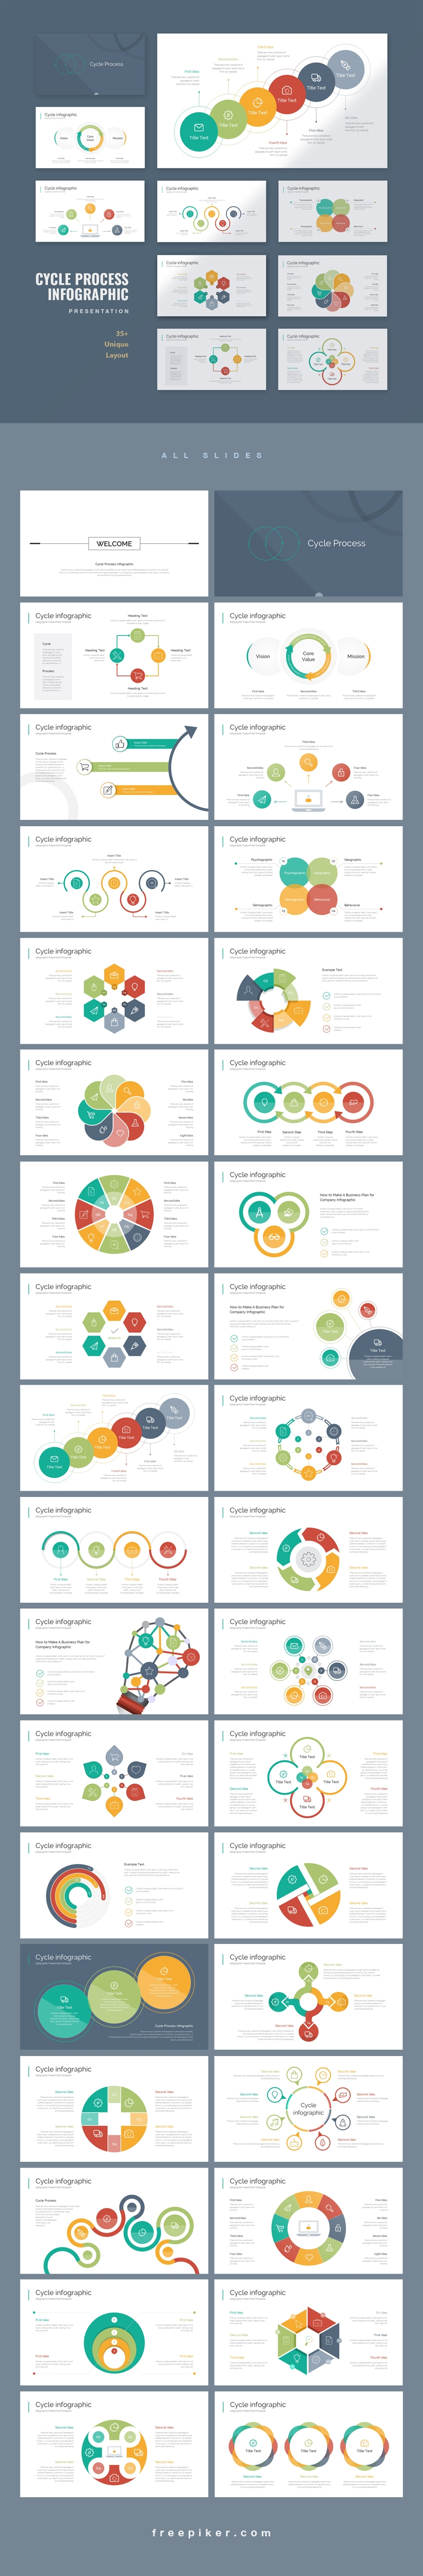 Cycle Process Infographic Powerpoint Template